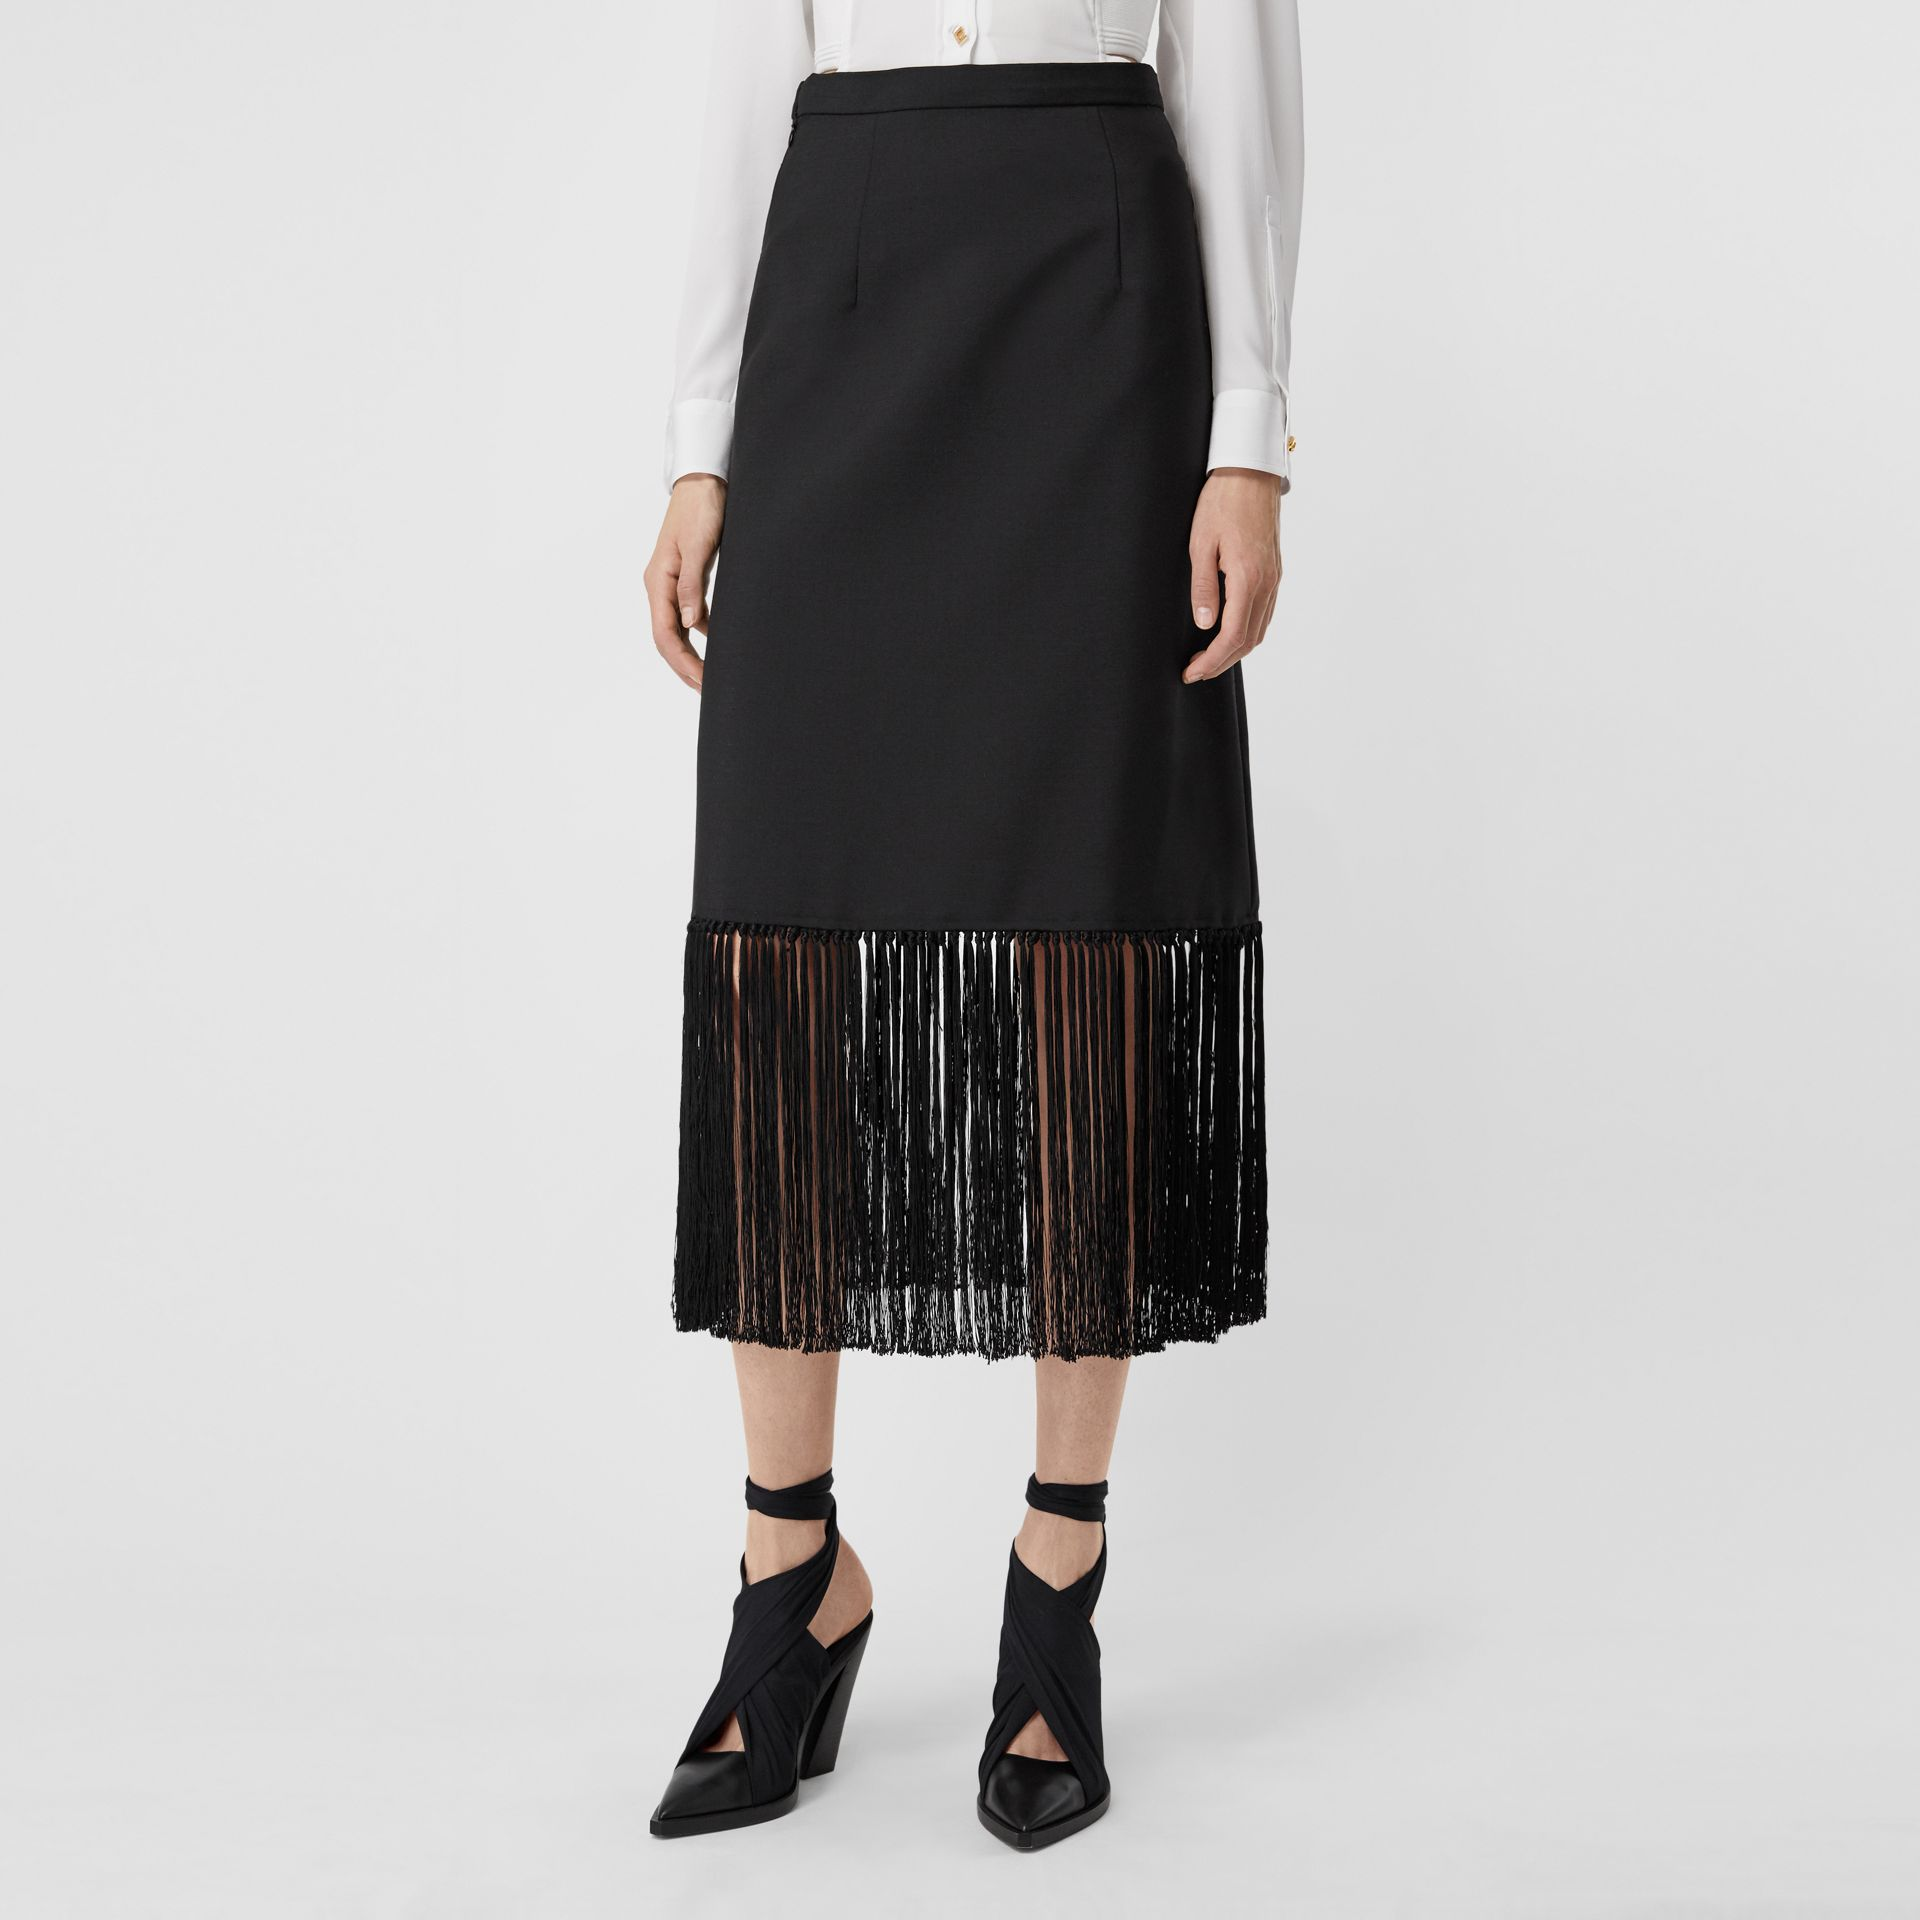 Fringed Mohair Wool A-line Skirt in Black - Women | Burberry Australia - gallery image 4